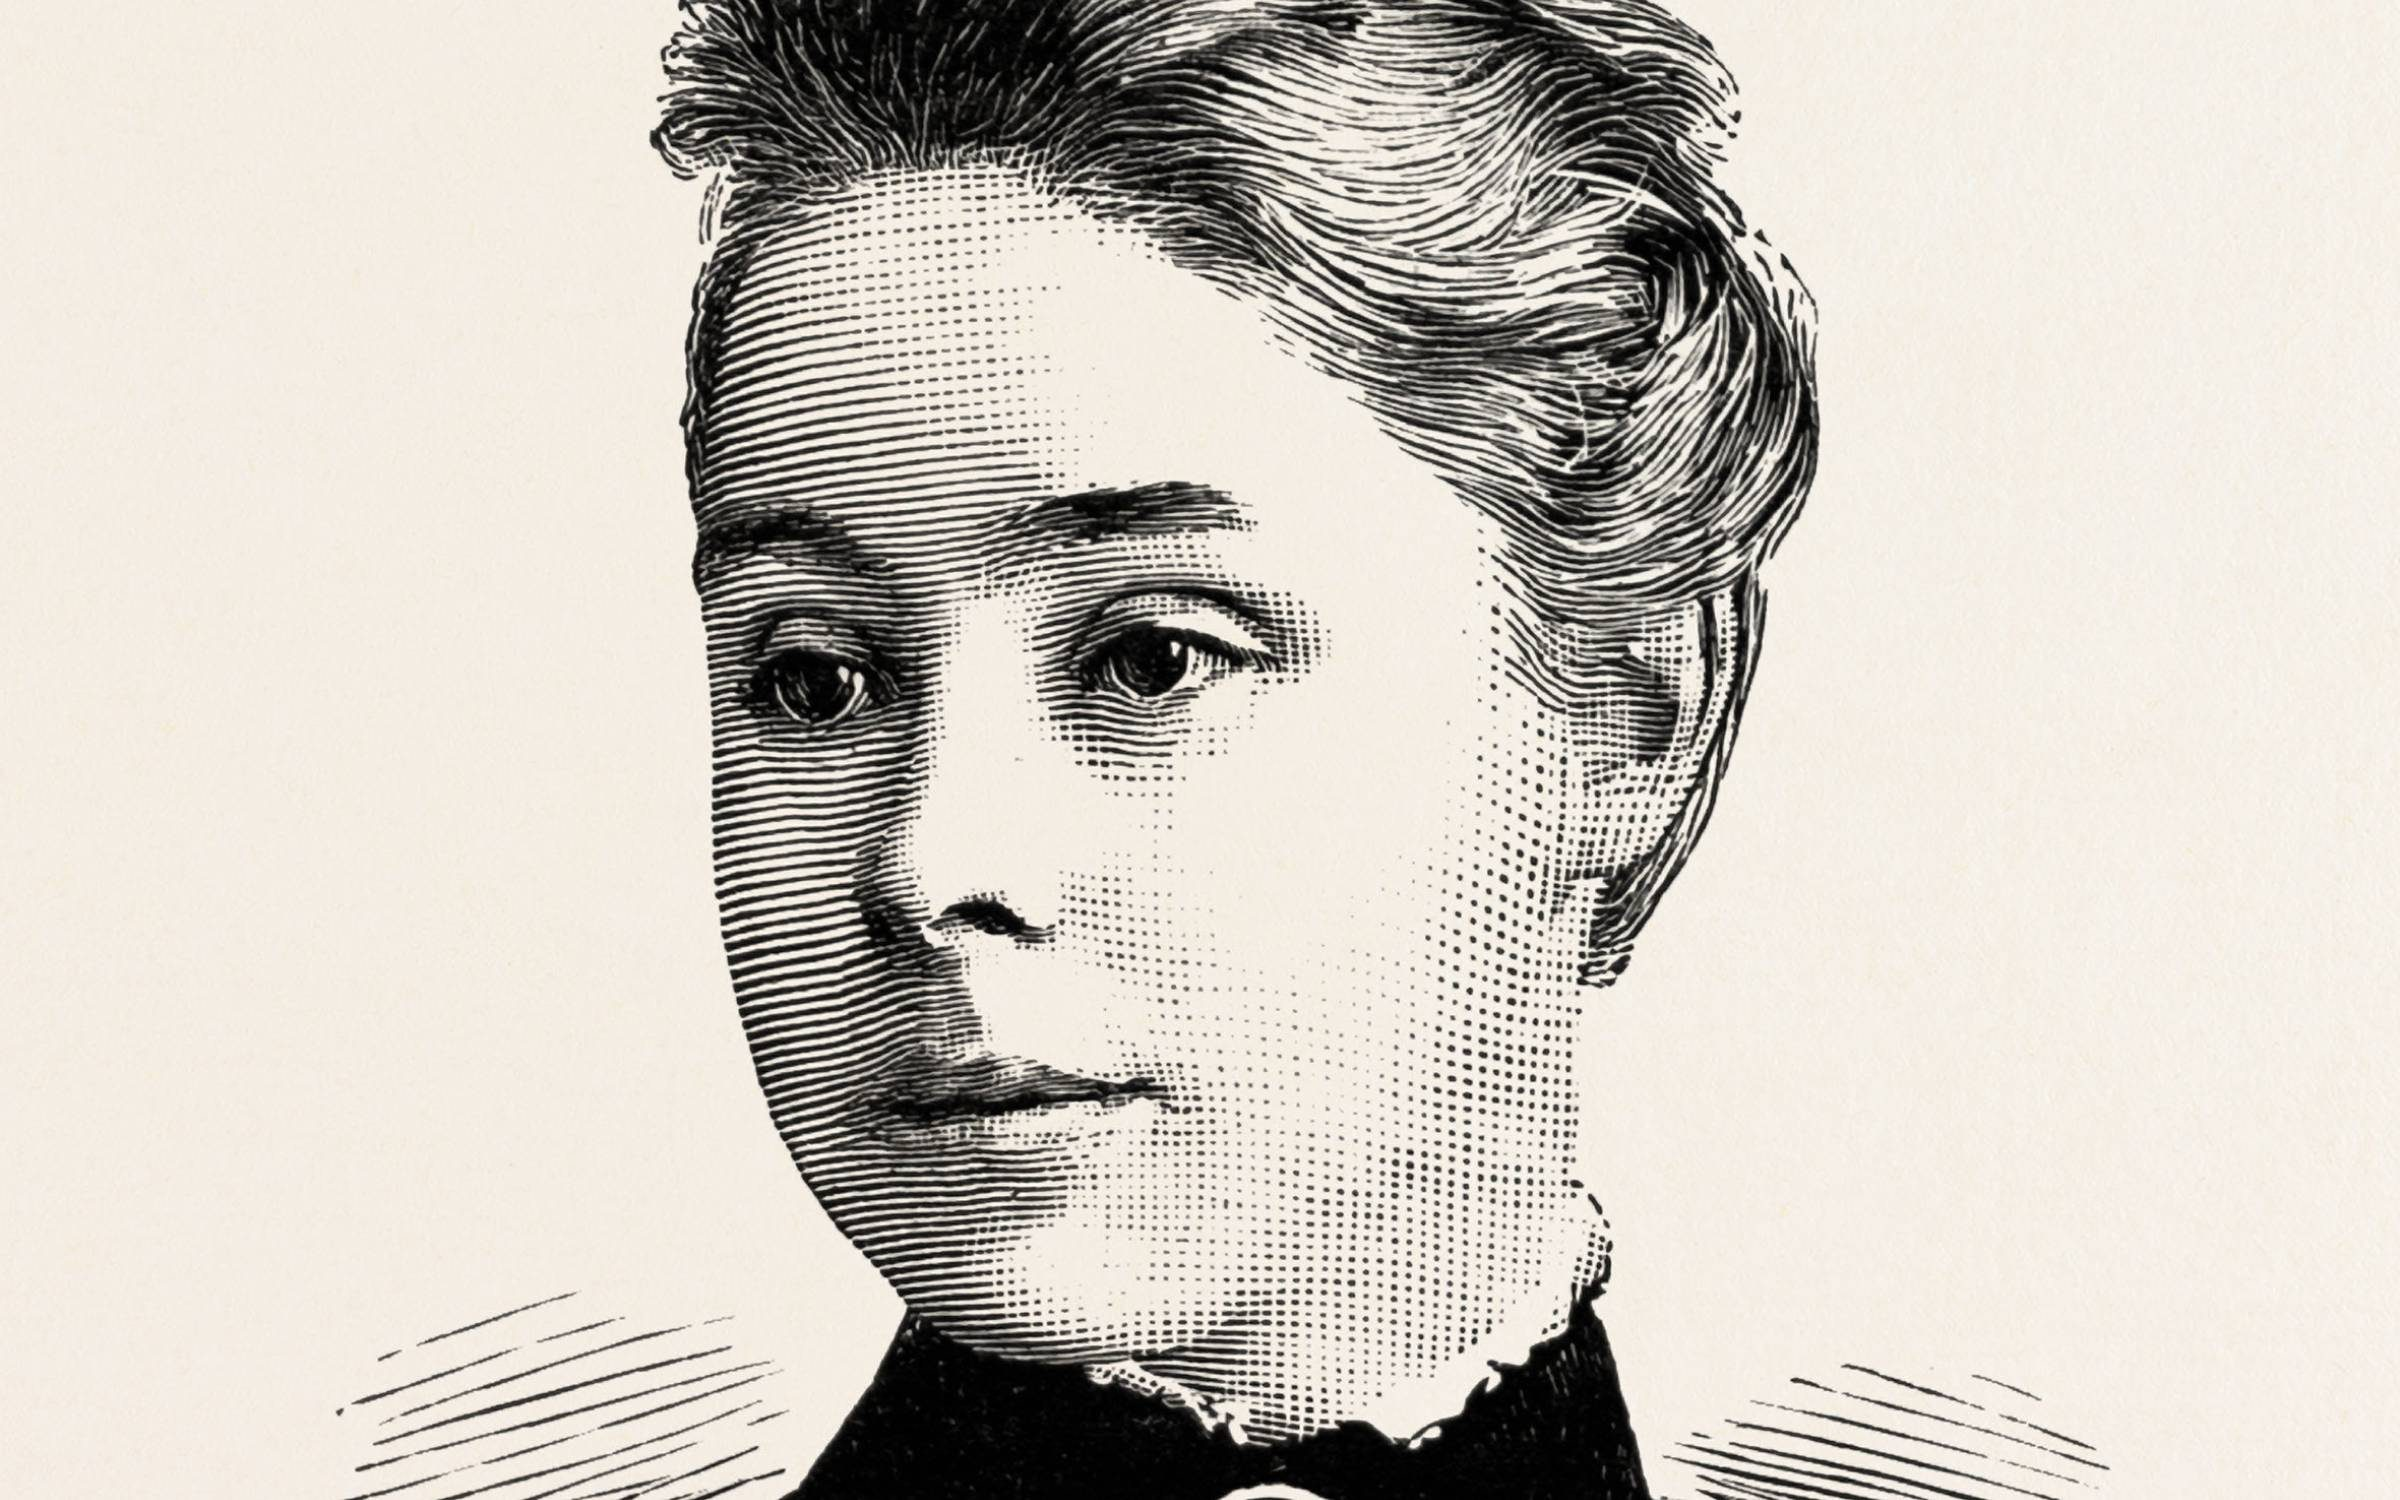 1890 engraving of Philippa Fawcett, the first female Senior Wrangler. Credit: Universal History Archive/Universal Images Group via Getty Images